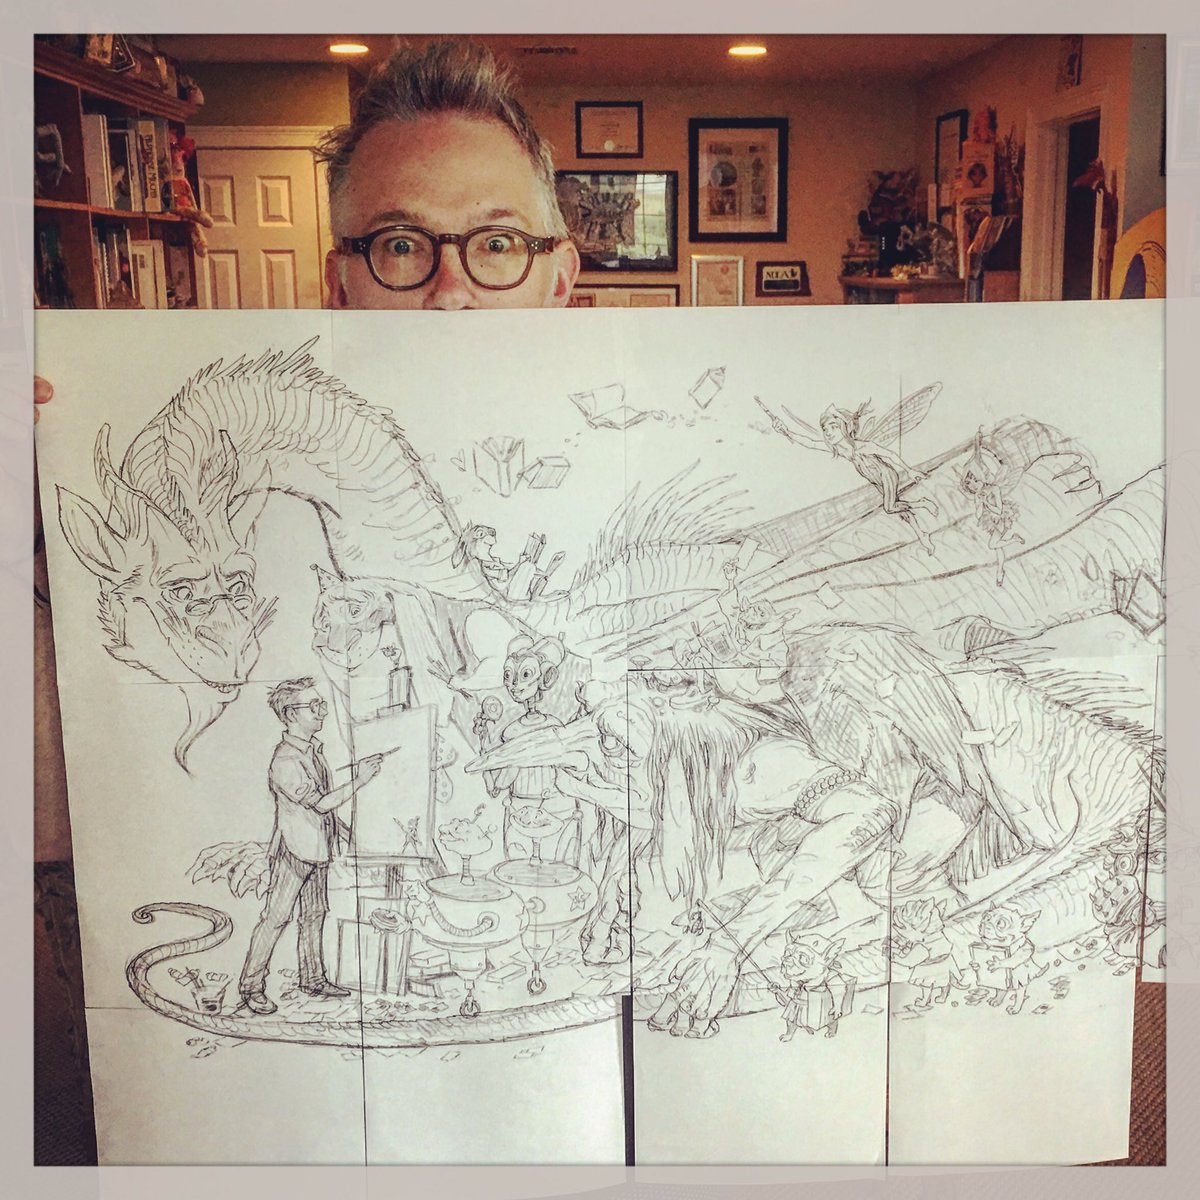 Let&#39;s trace this monster! #drawing #fantasyart @NRockwellMuseum<br>http://pic.twitter.com/UEstNJCwdi